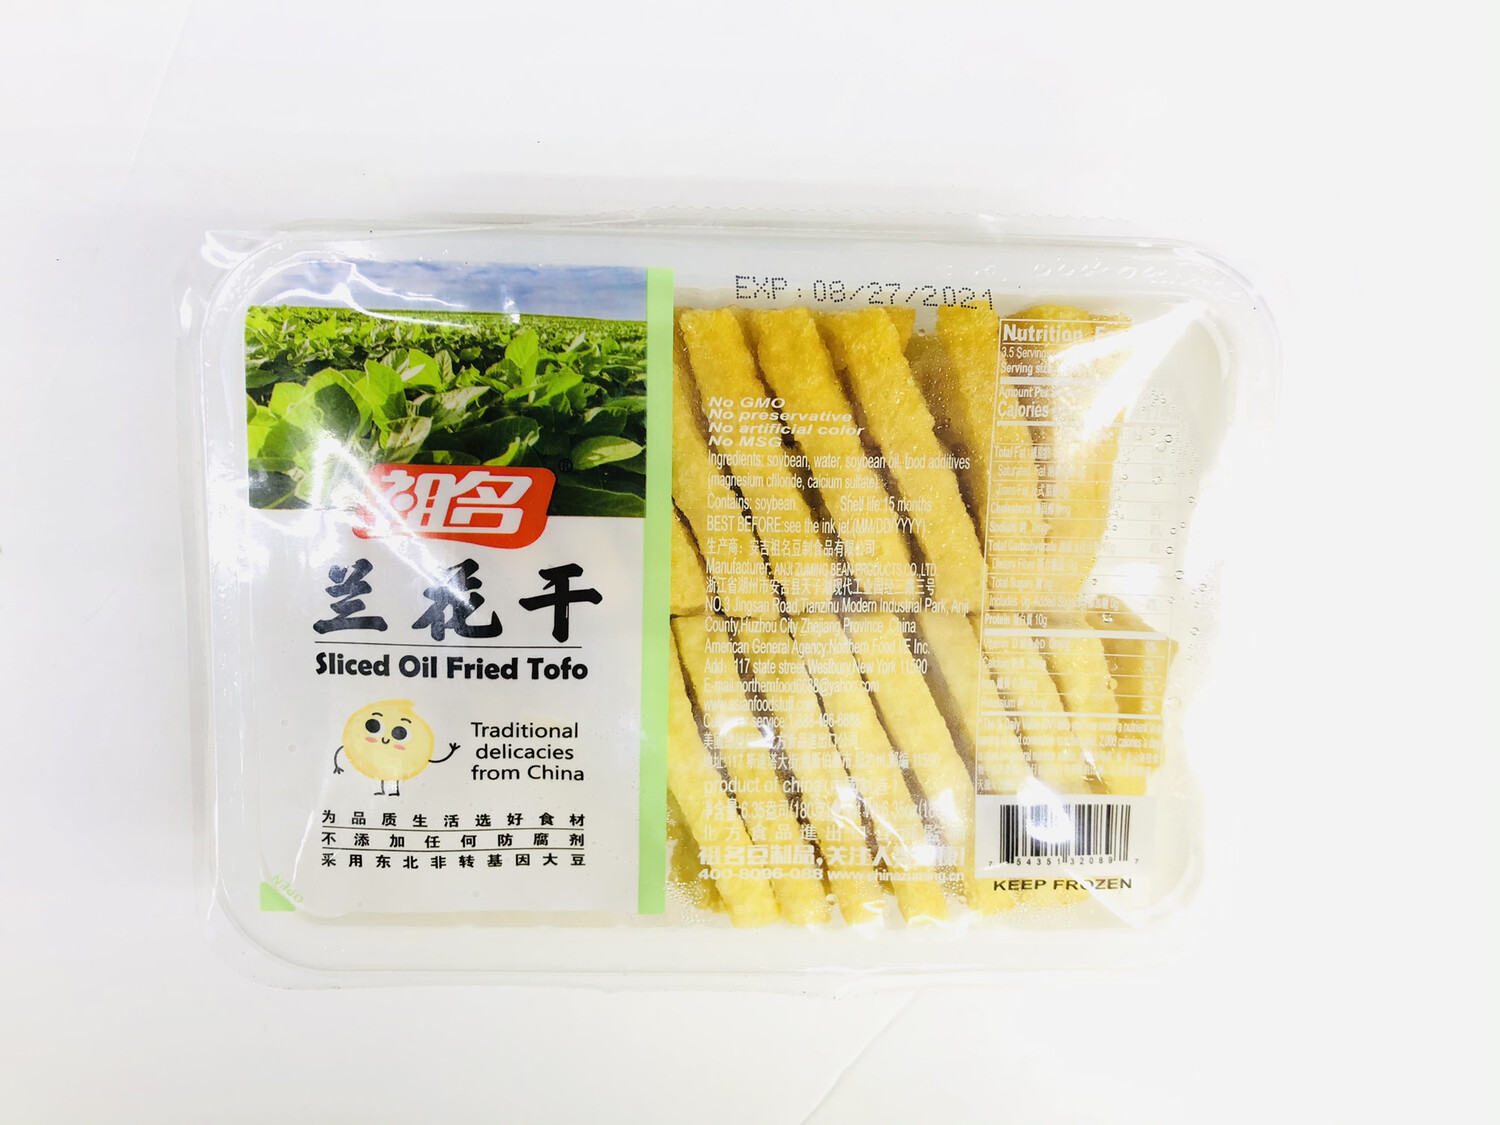 祖名 兰花干 ZUMING Sliced Oil Fried Tofu 6.35oz(100g)